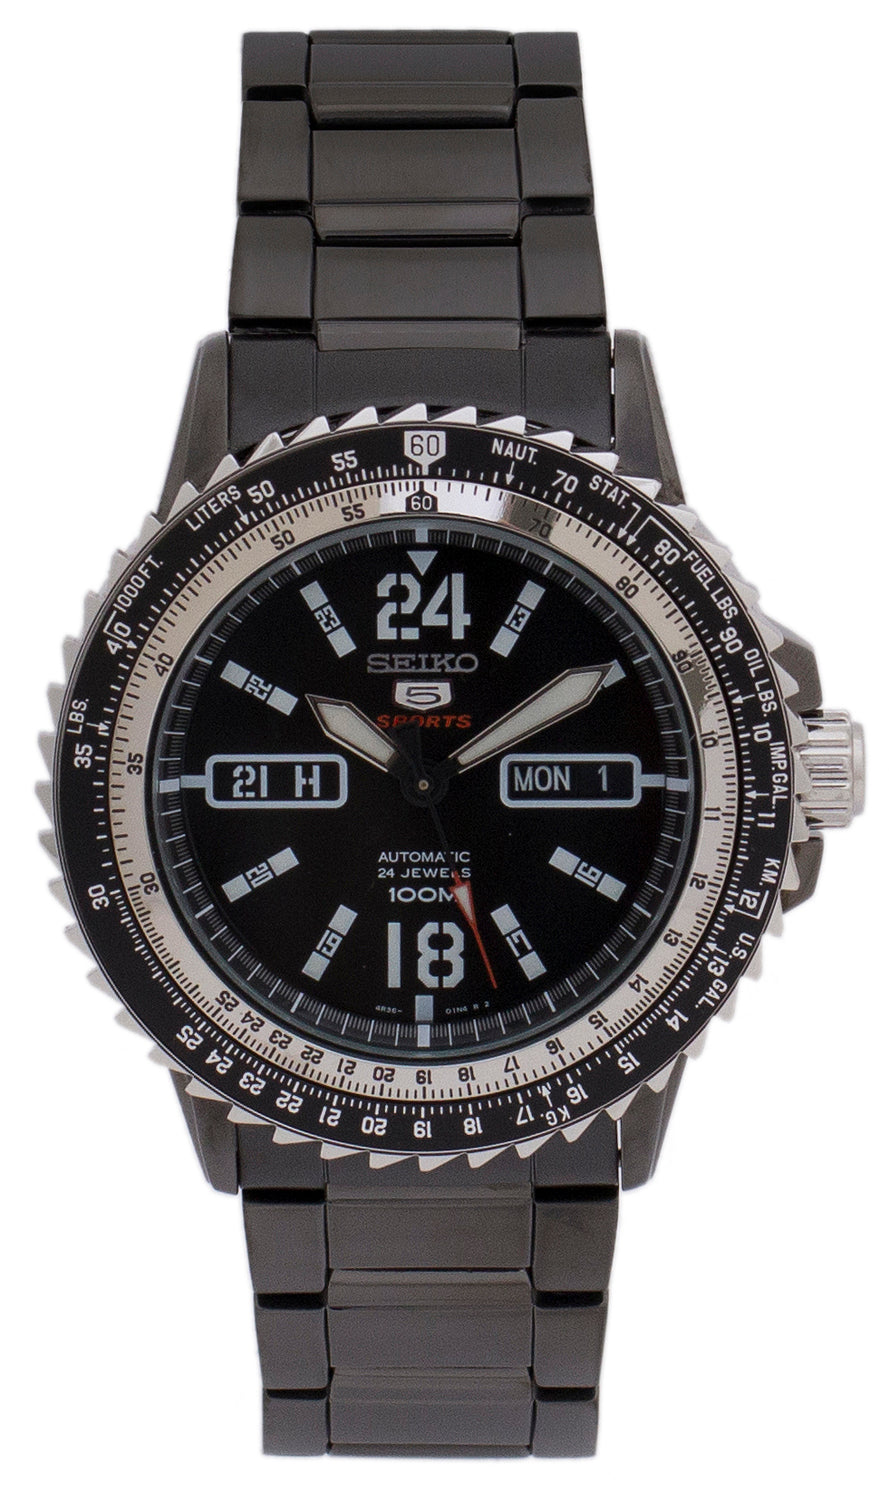 Seiko Men's 5 Sports Watch (SRP355K1)